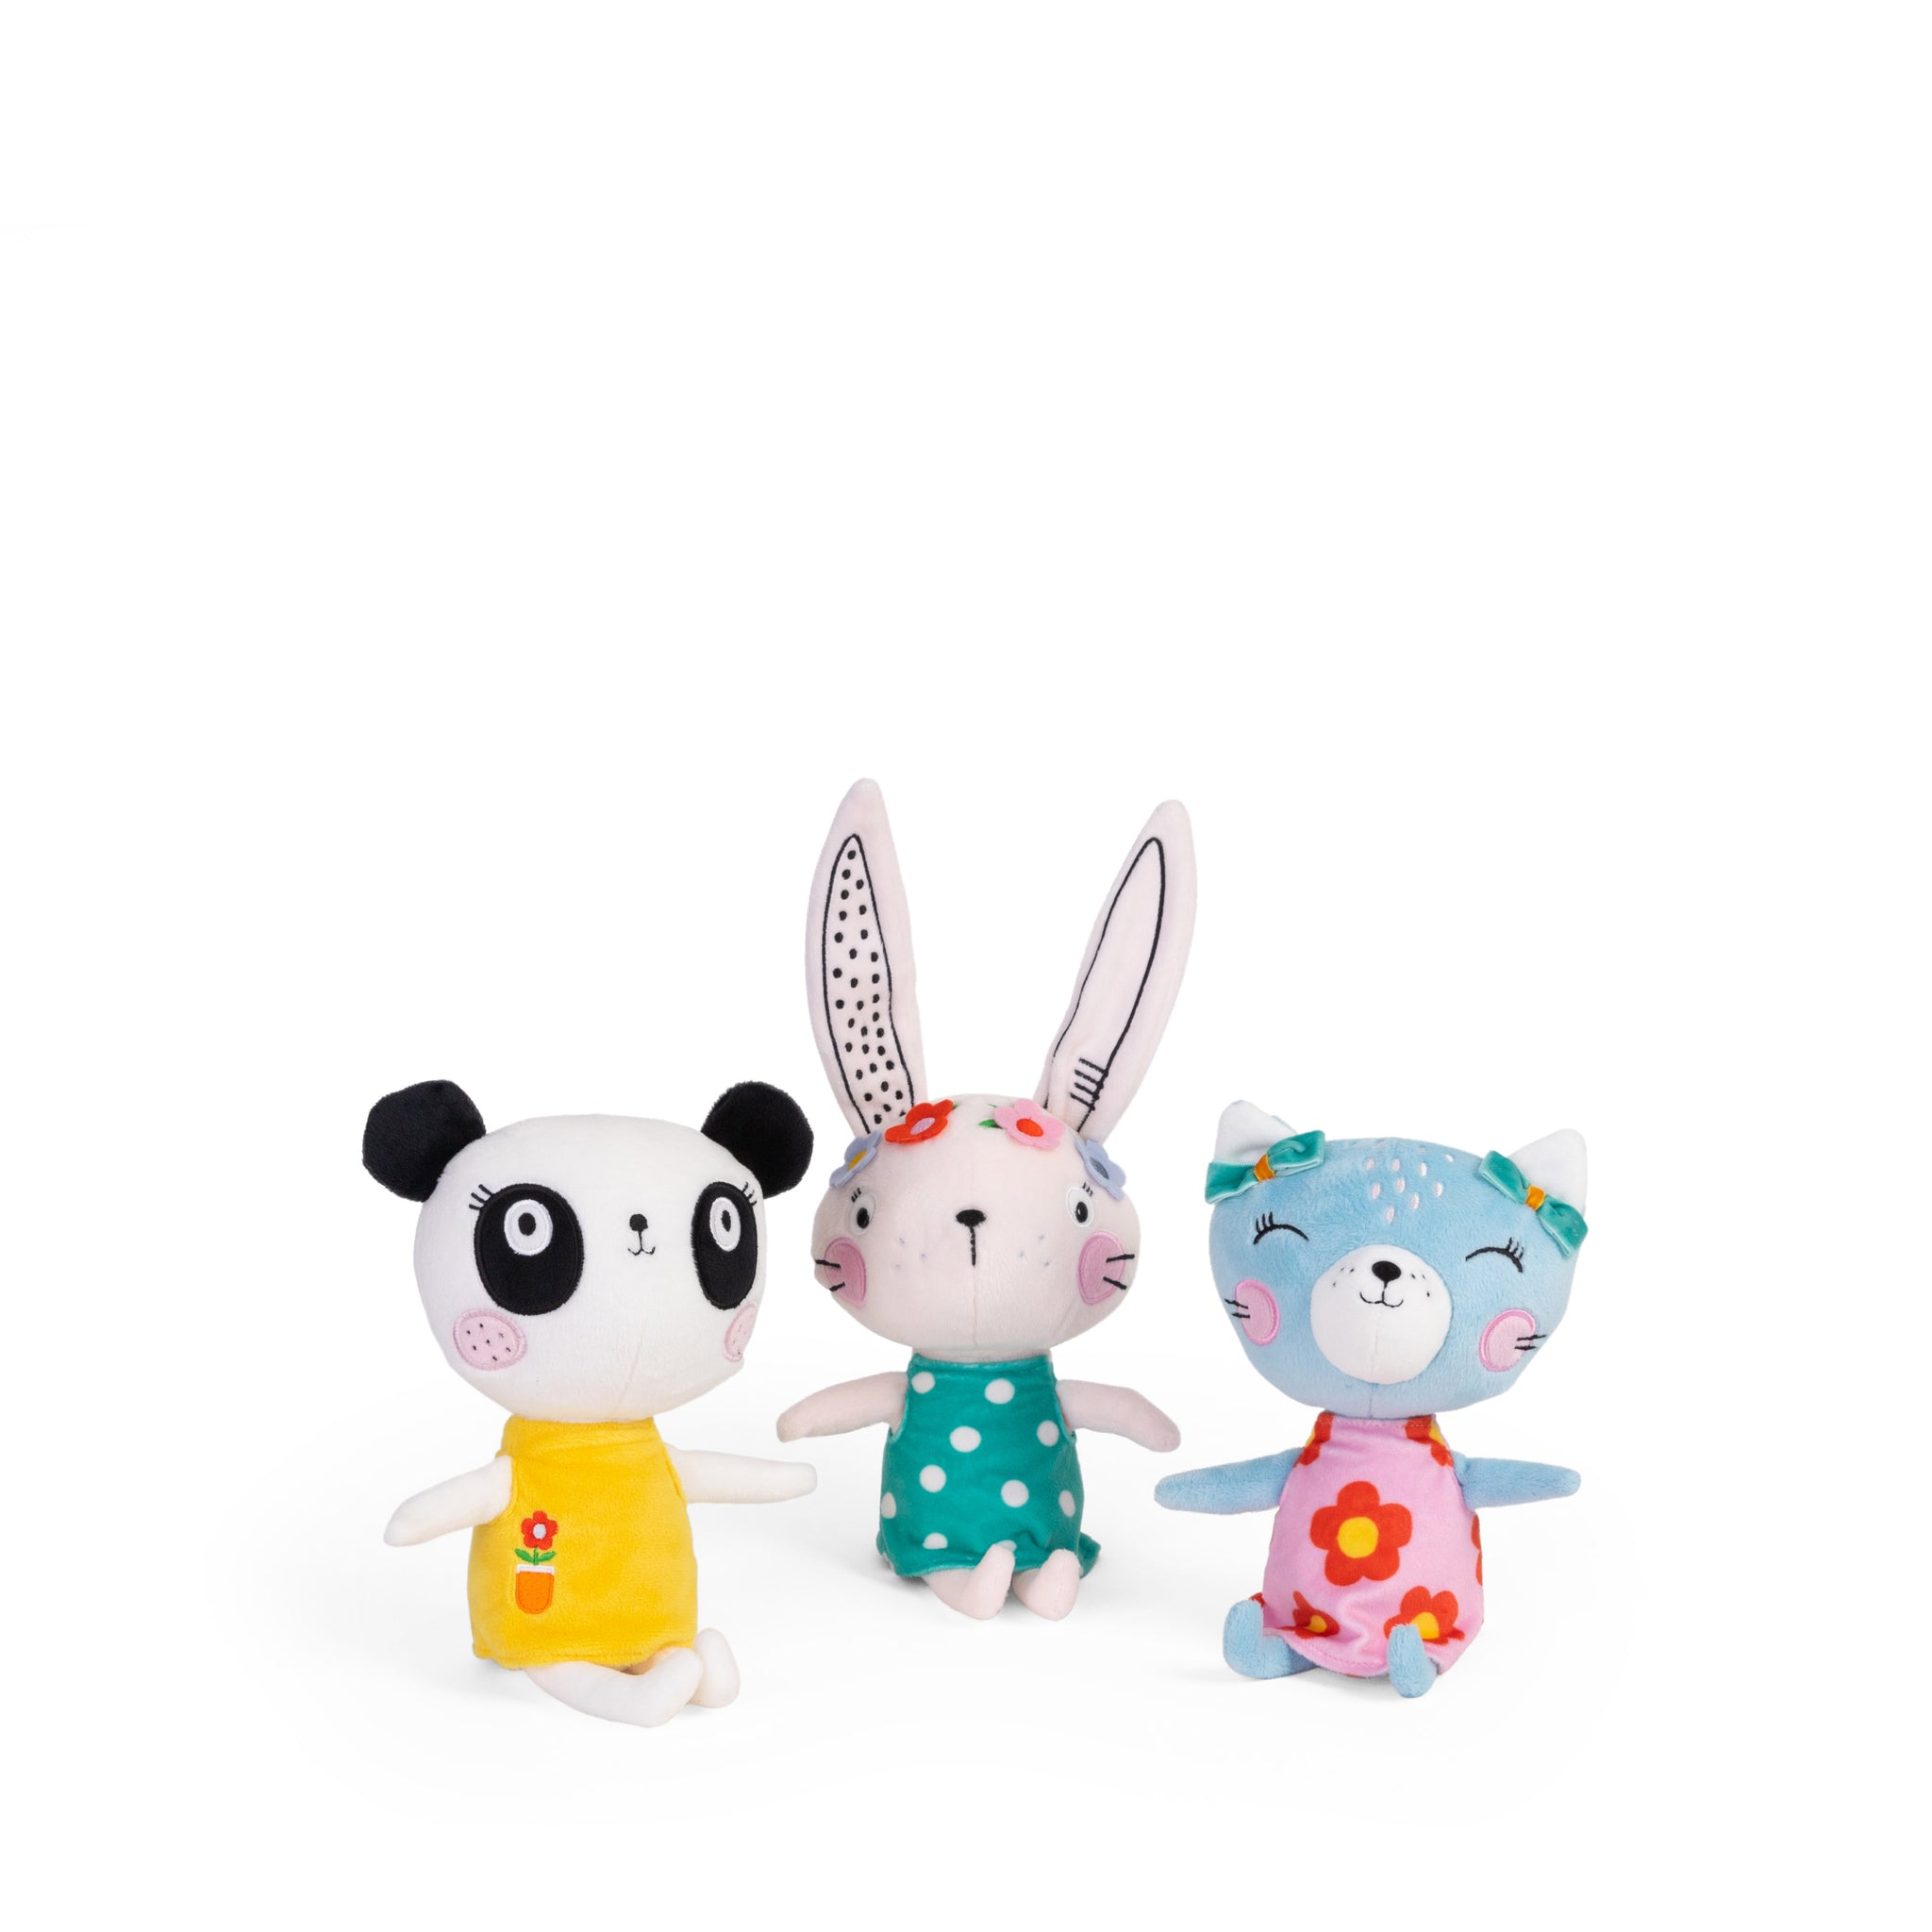 Buy Lemon Ribbon Animal Bunny, Panda and Cat Cuddly Toy Gift Set, Small Cute Girl Character Toys at shop.lemonribbon.com